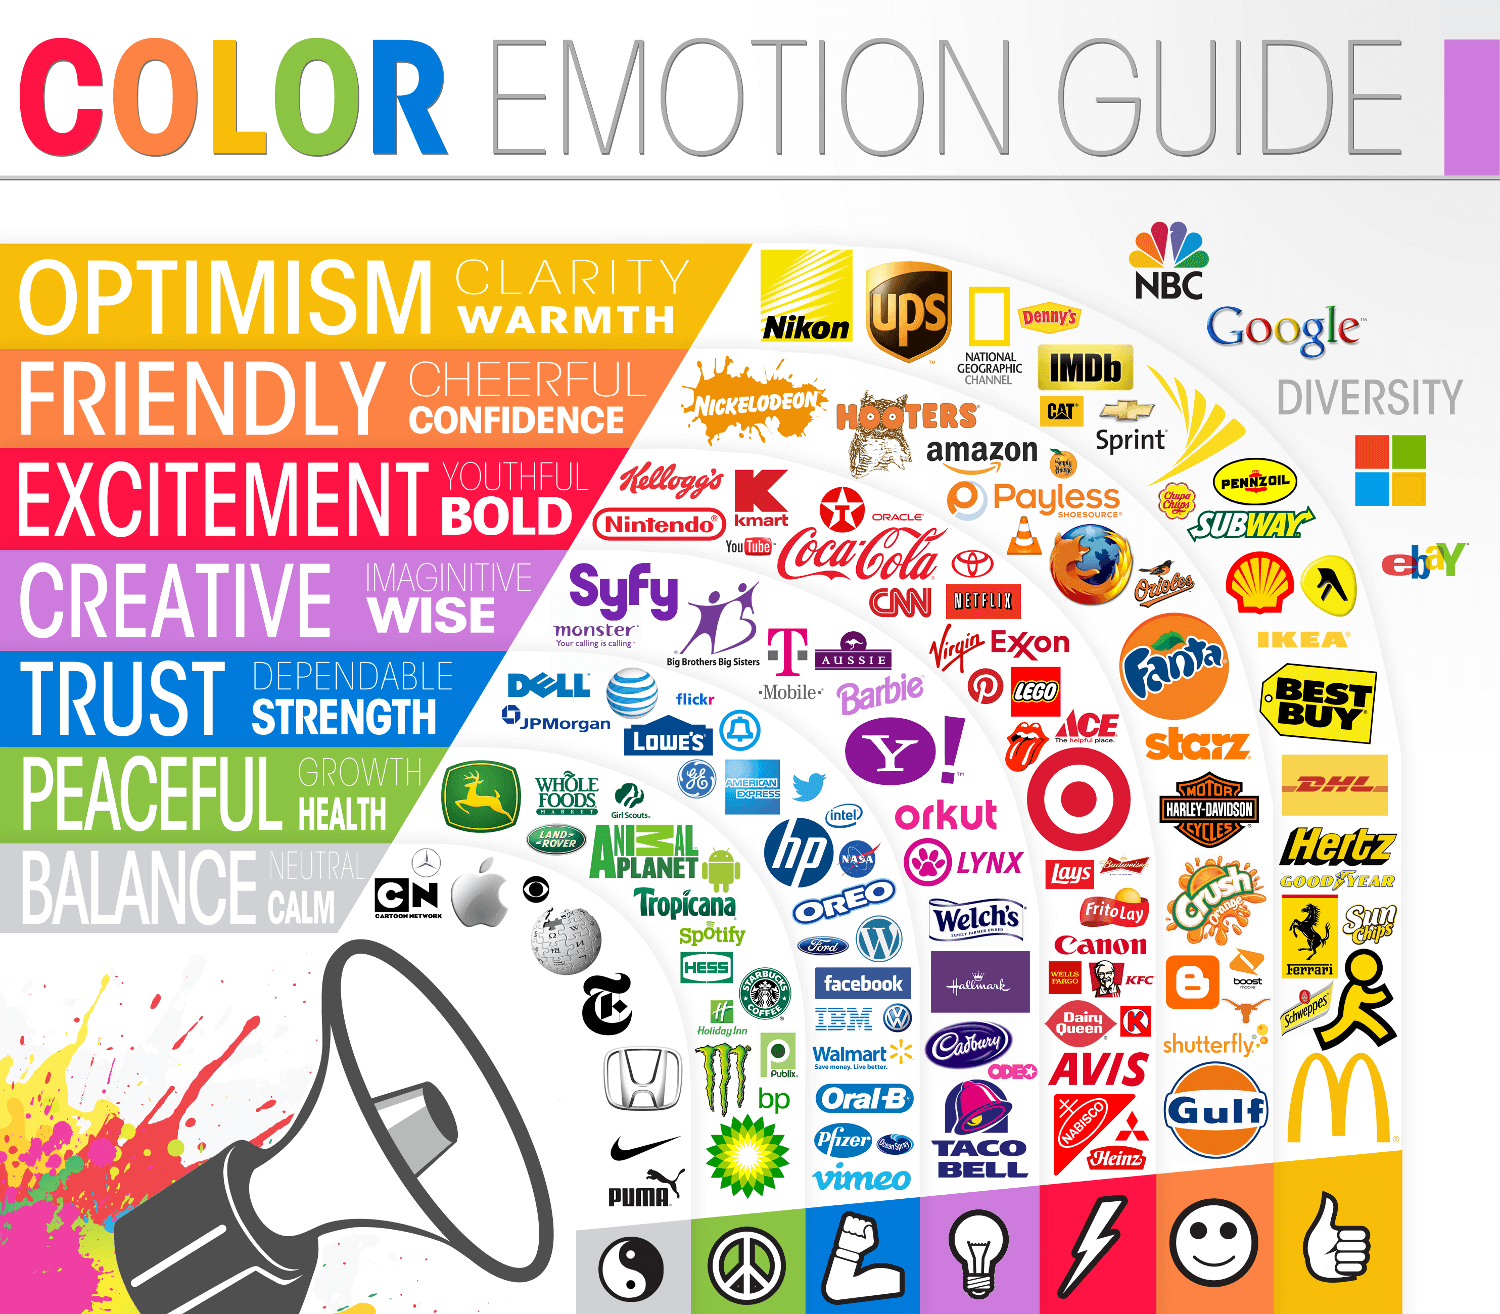 color emotion guide by thelogocompany.net